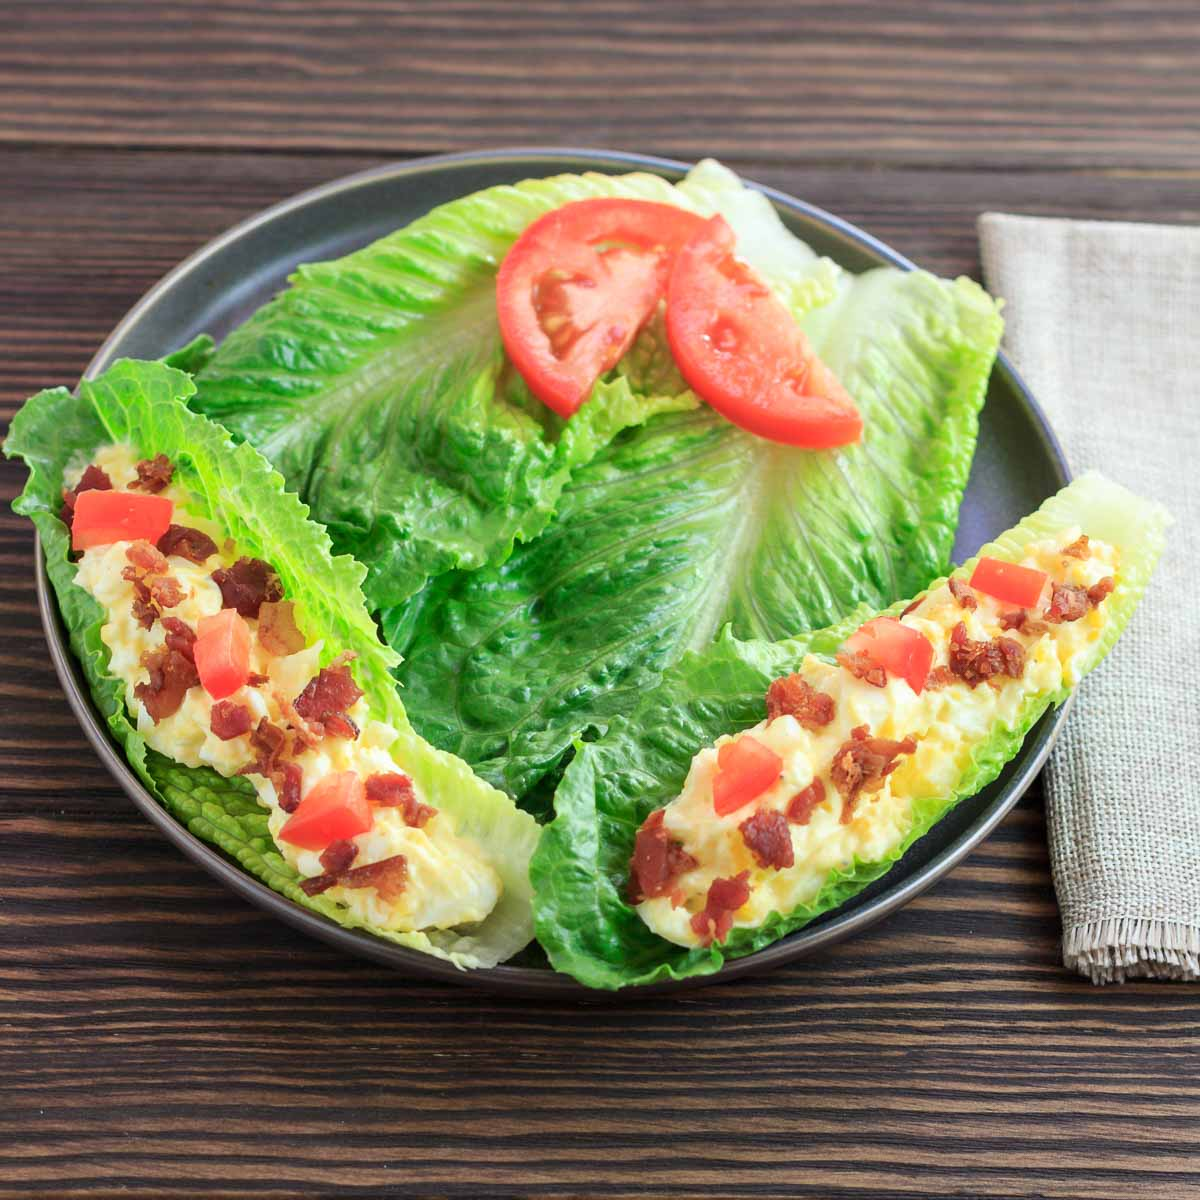 Egg salad bacon and tomato in 2 lettuce boats.